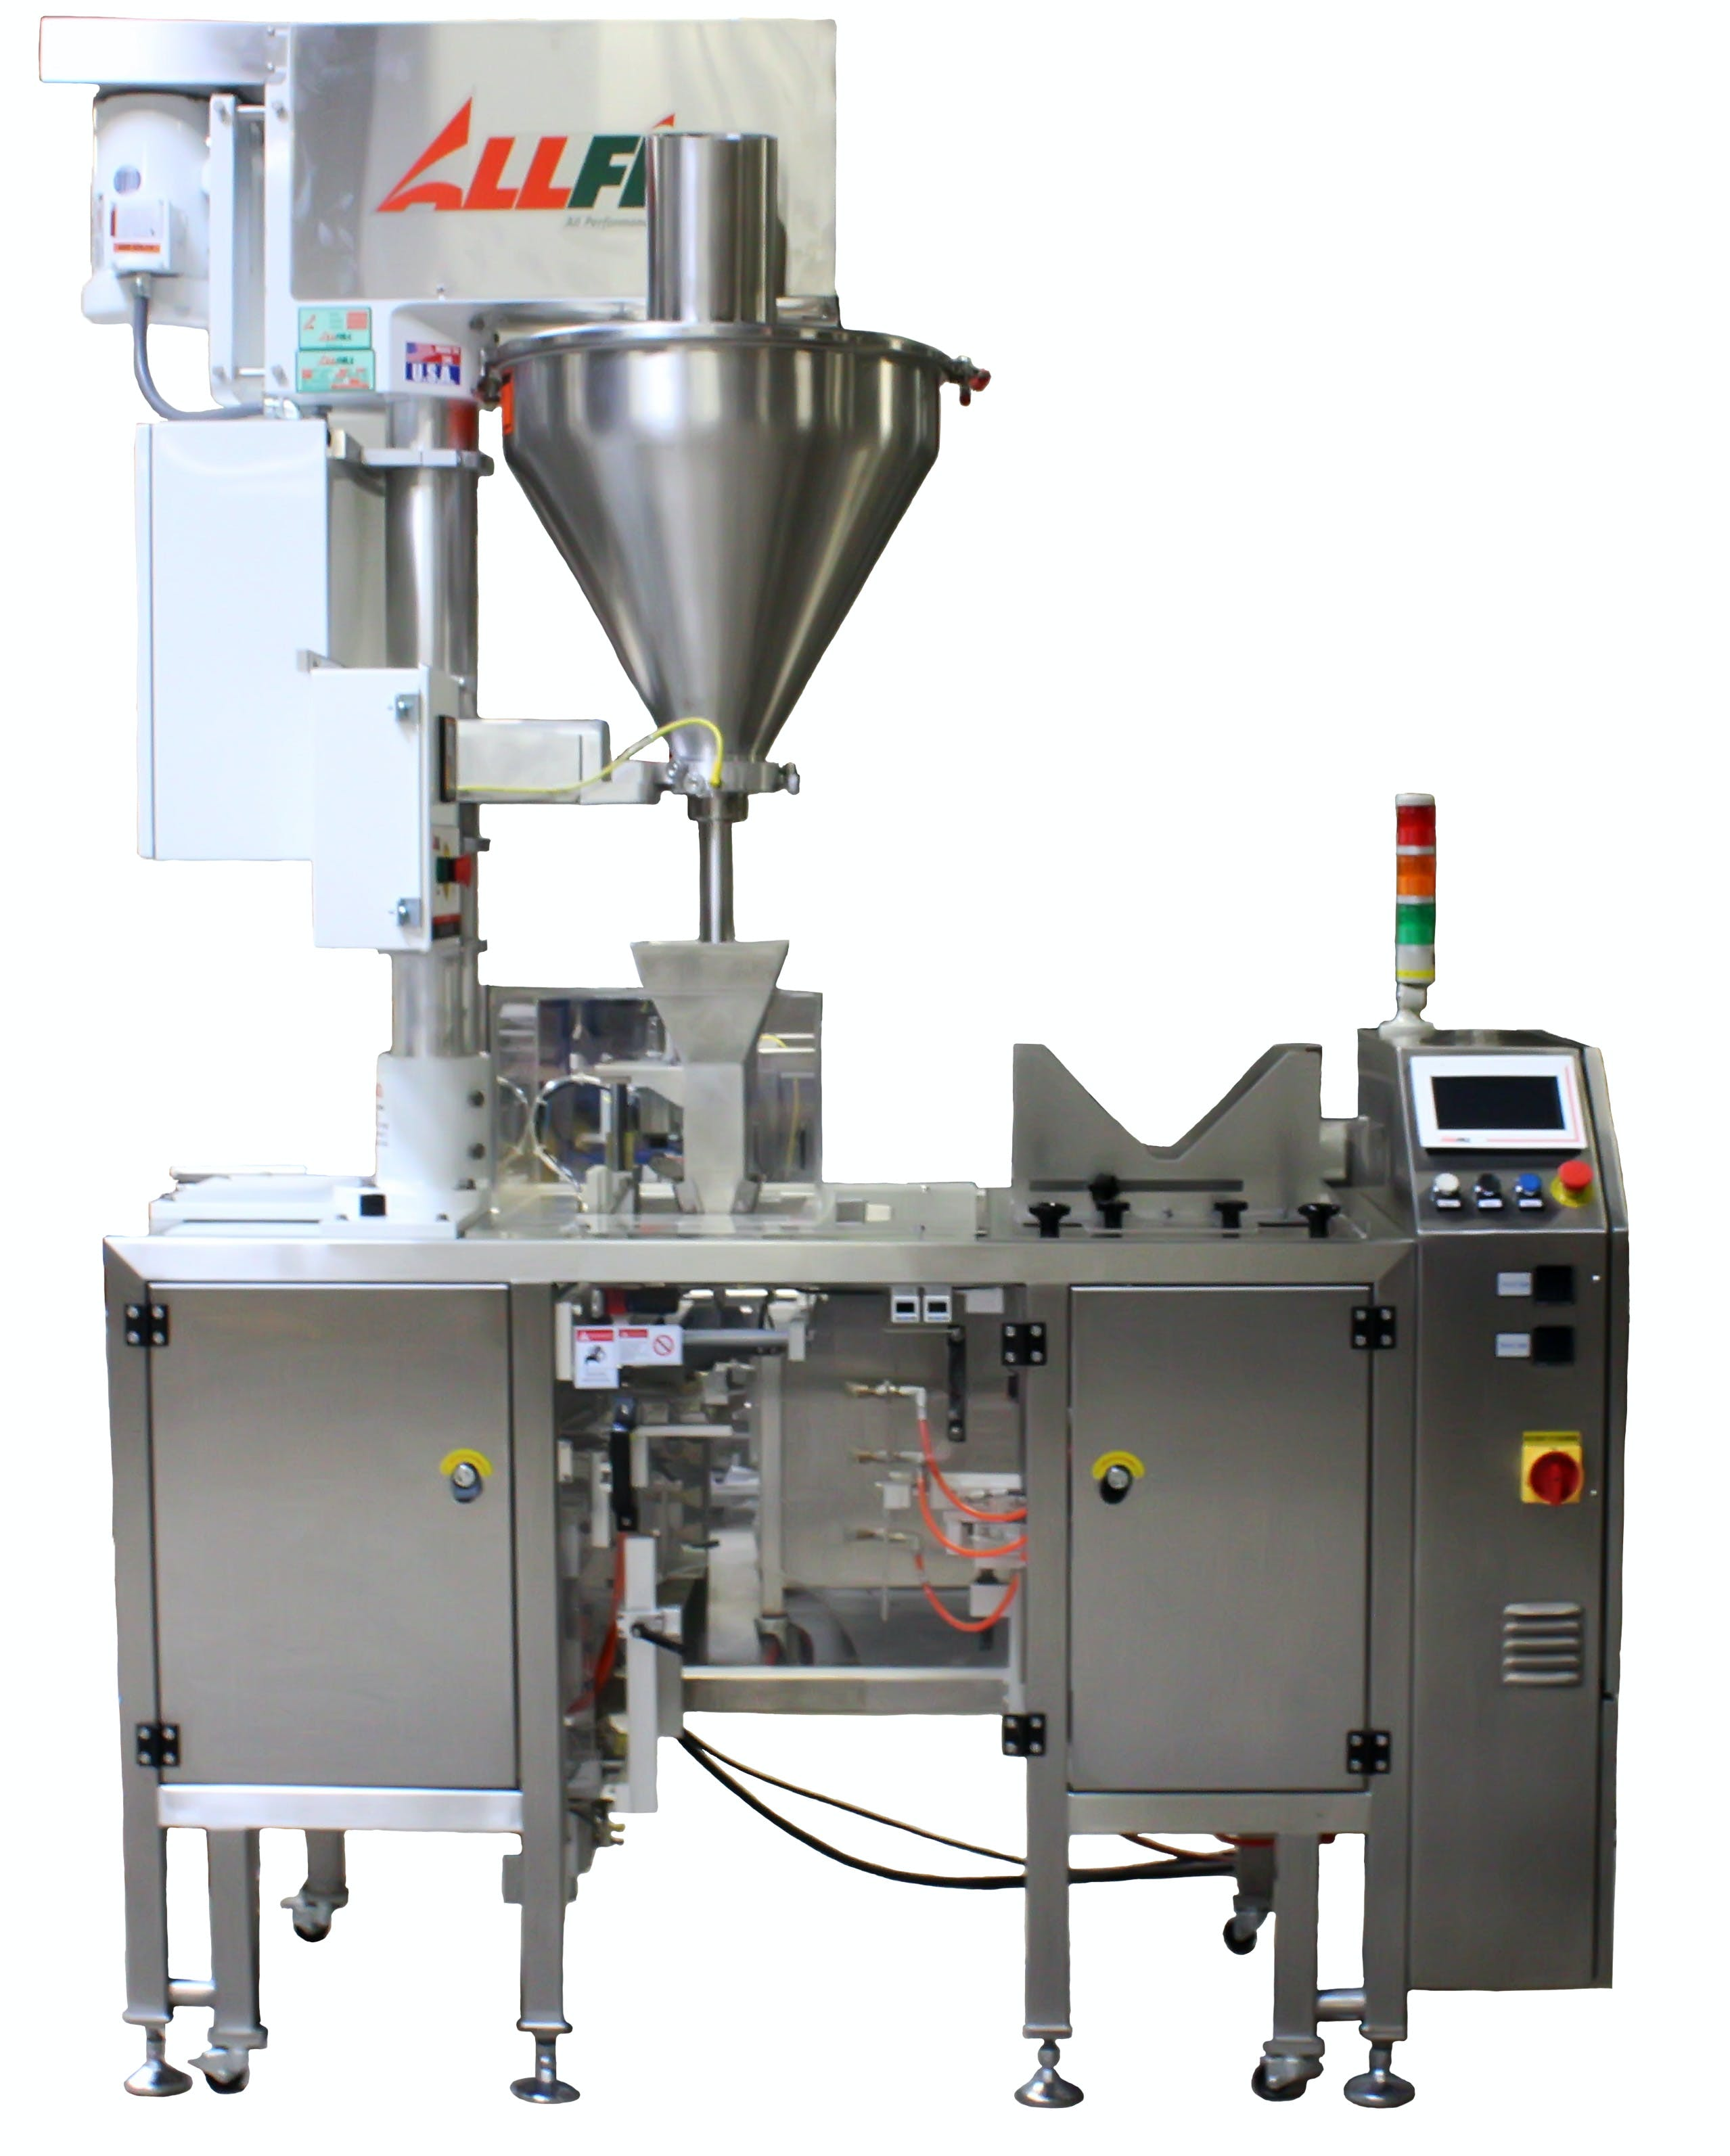 All-Fill B100-PM Premade Poucher Pouch filler sold by Package Devices LLC